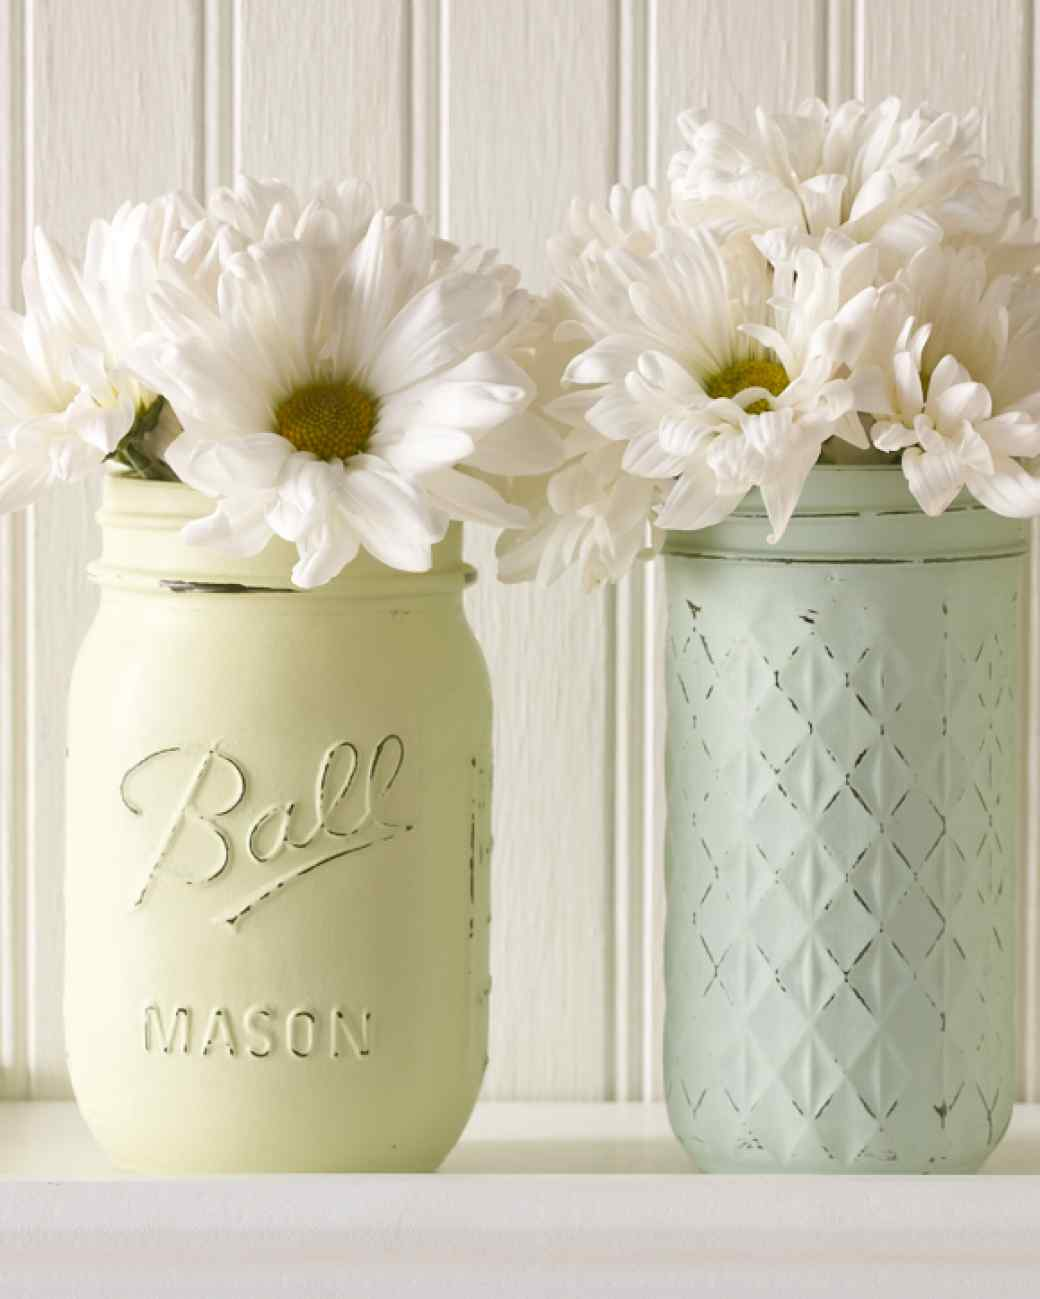 Diy Mason Jar Design Decorating Ideas: Diy: Mason Jar Decor